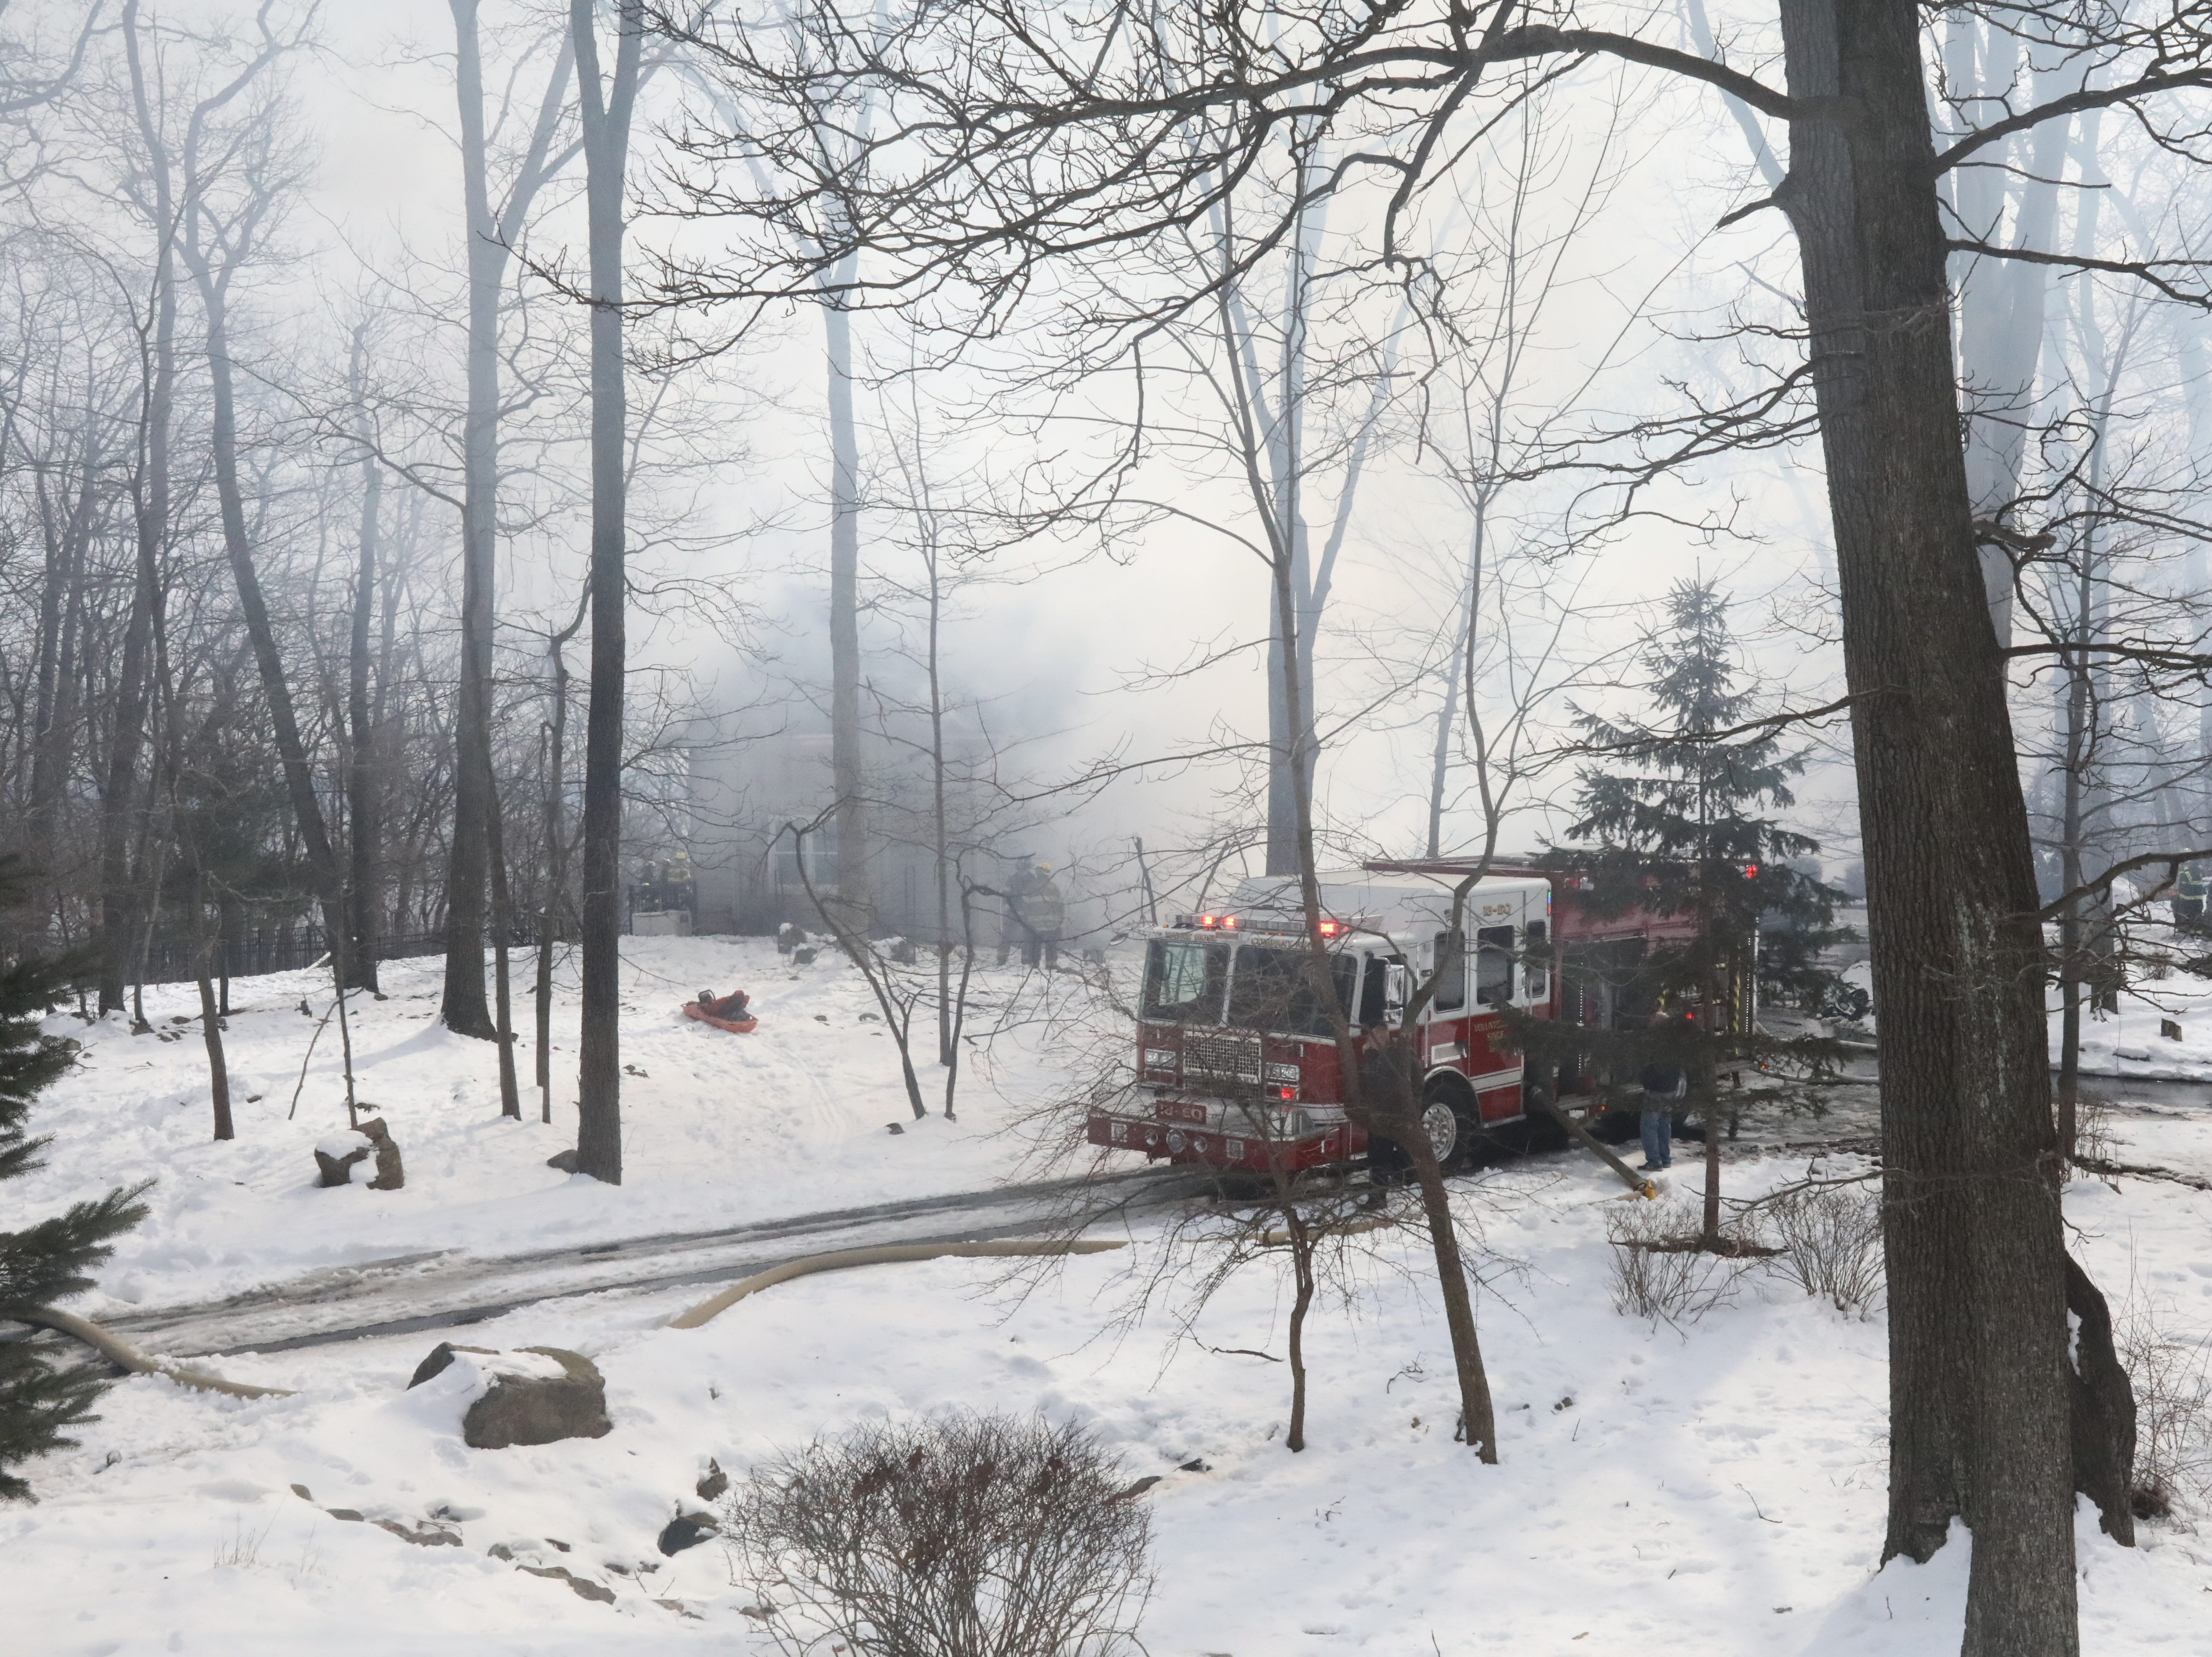 A house is hidden by smoke as firefighters battle the house fire on Soluri Lane in Tomkins Cove on March 8, 2019.